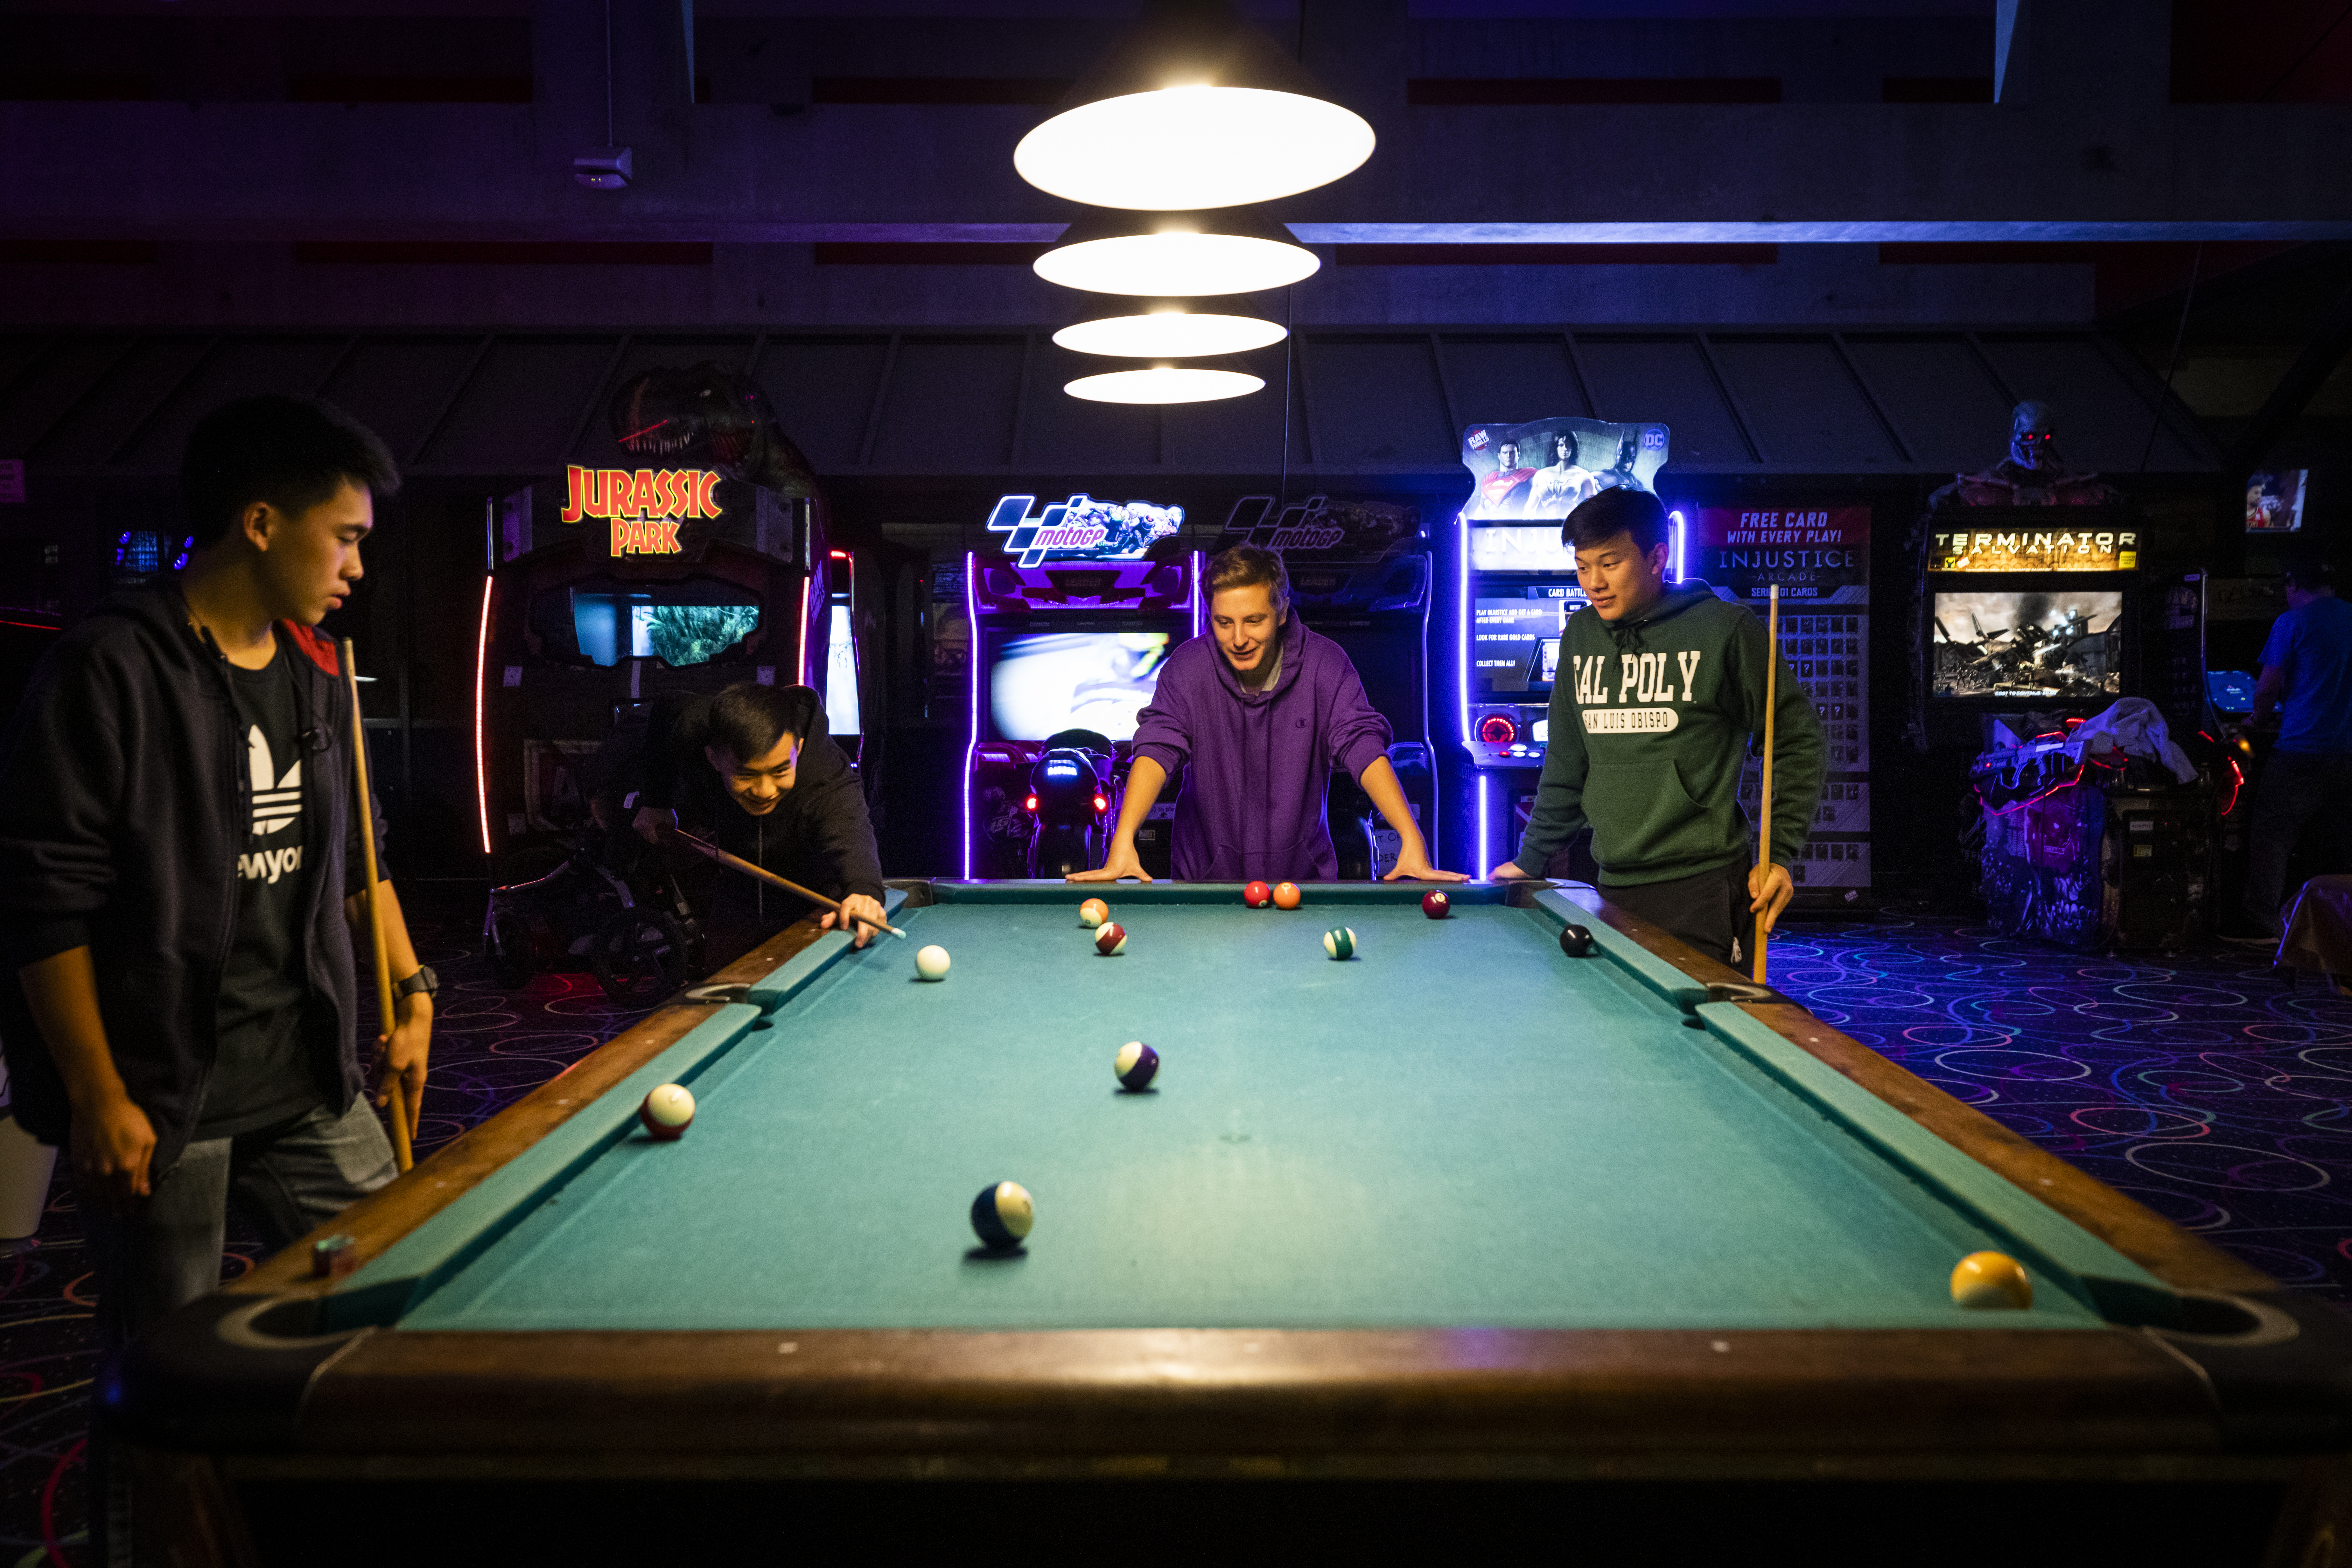 Four young men stand around a pool table in a dark arcade, lit from lamps above and video game cabinets in the backgroun.